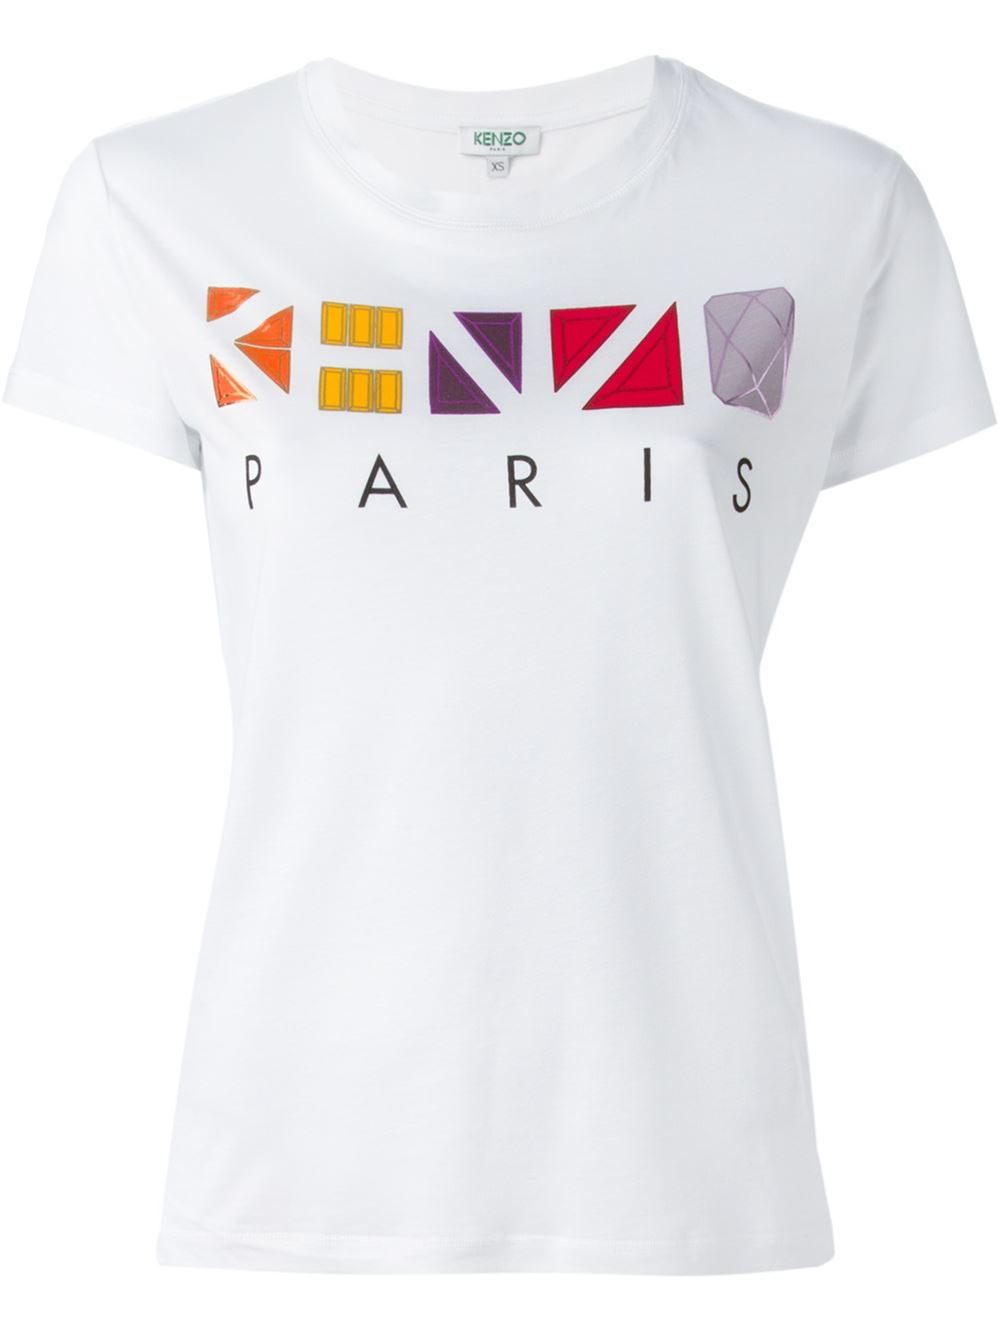 kenzo paris t shirt in white lyst. Black Bedroom Furniture Sets. Home Design Ideas